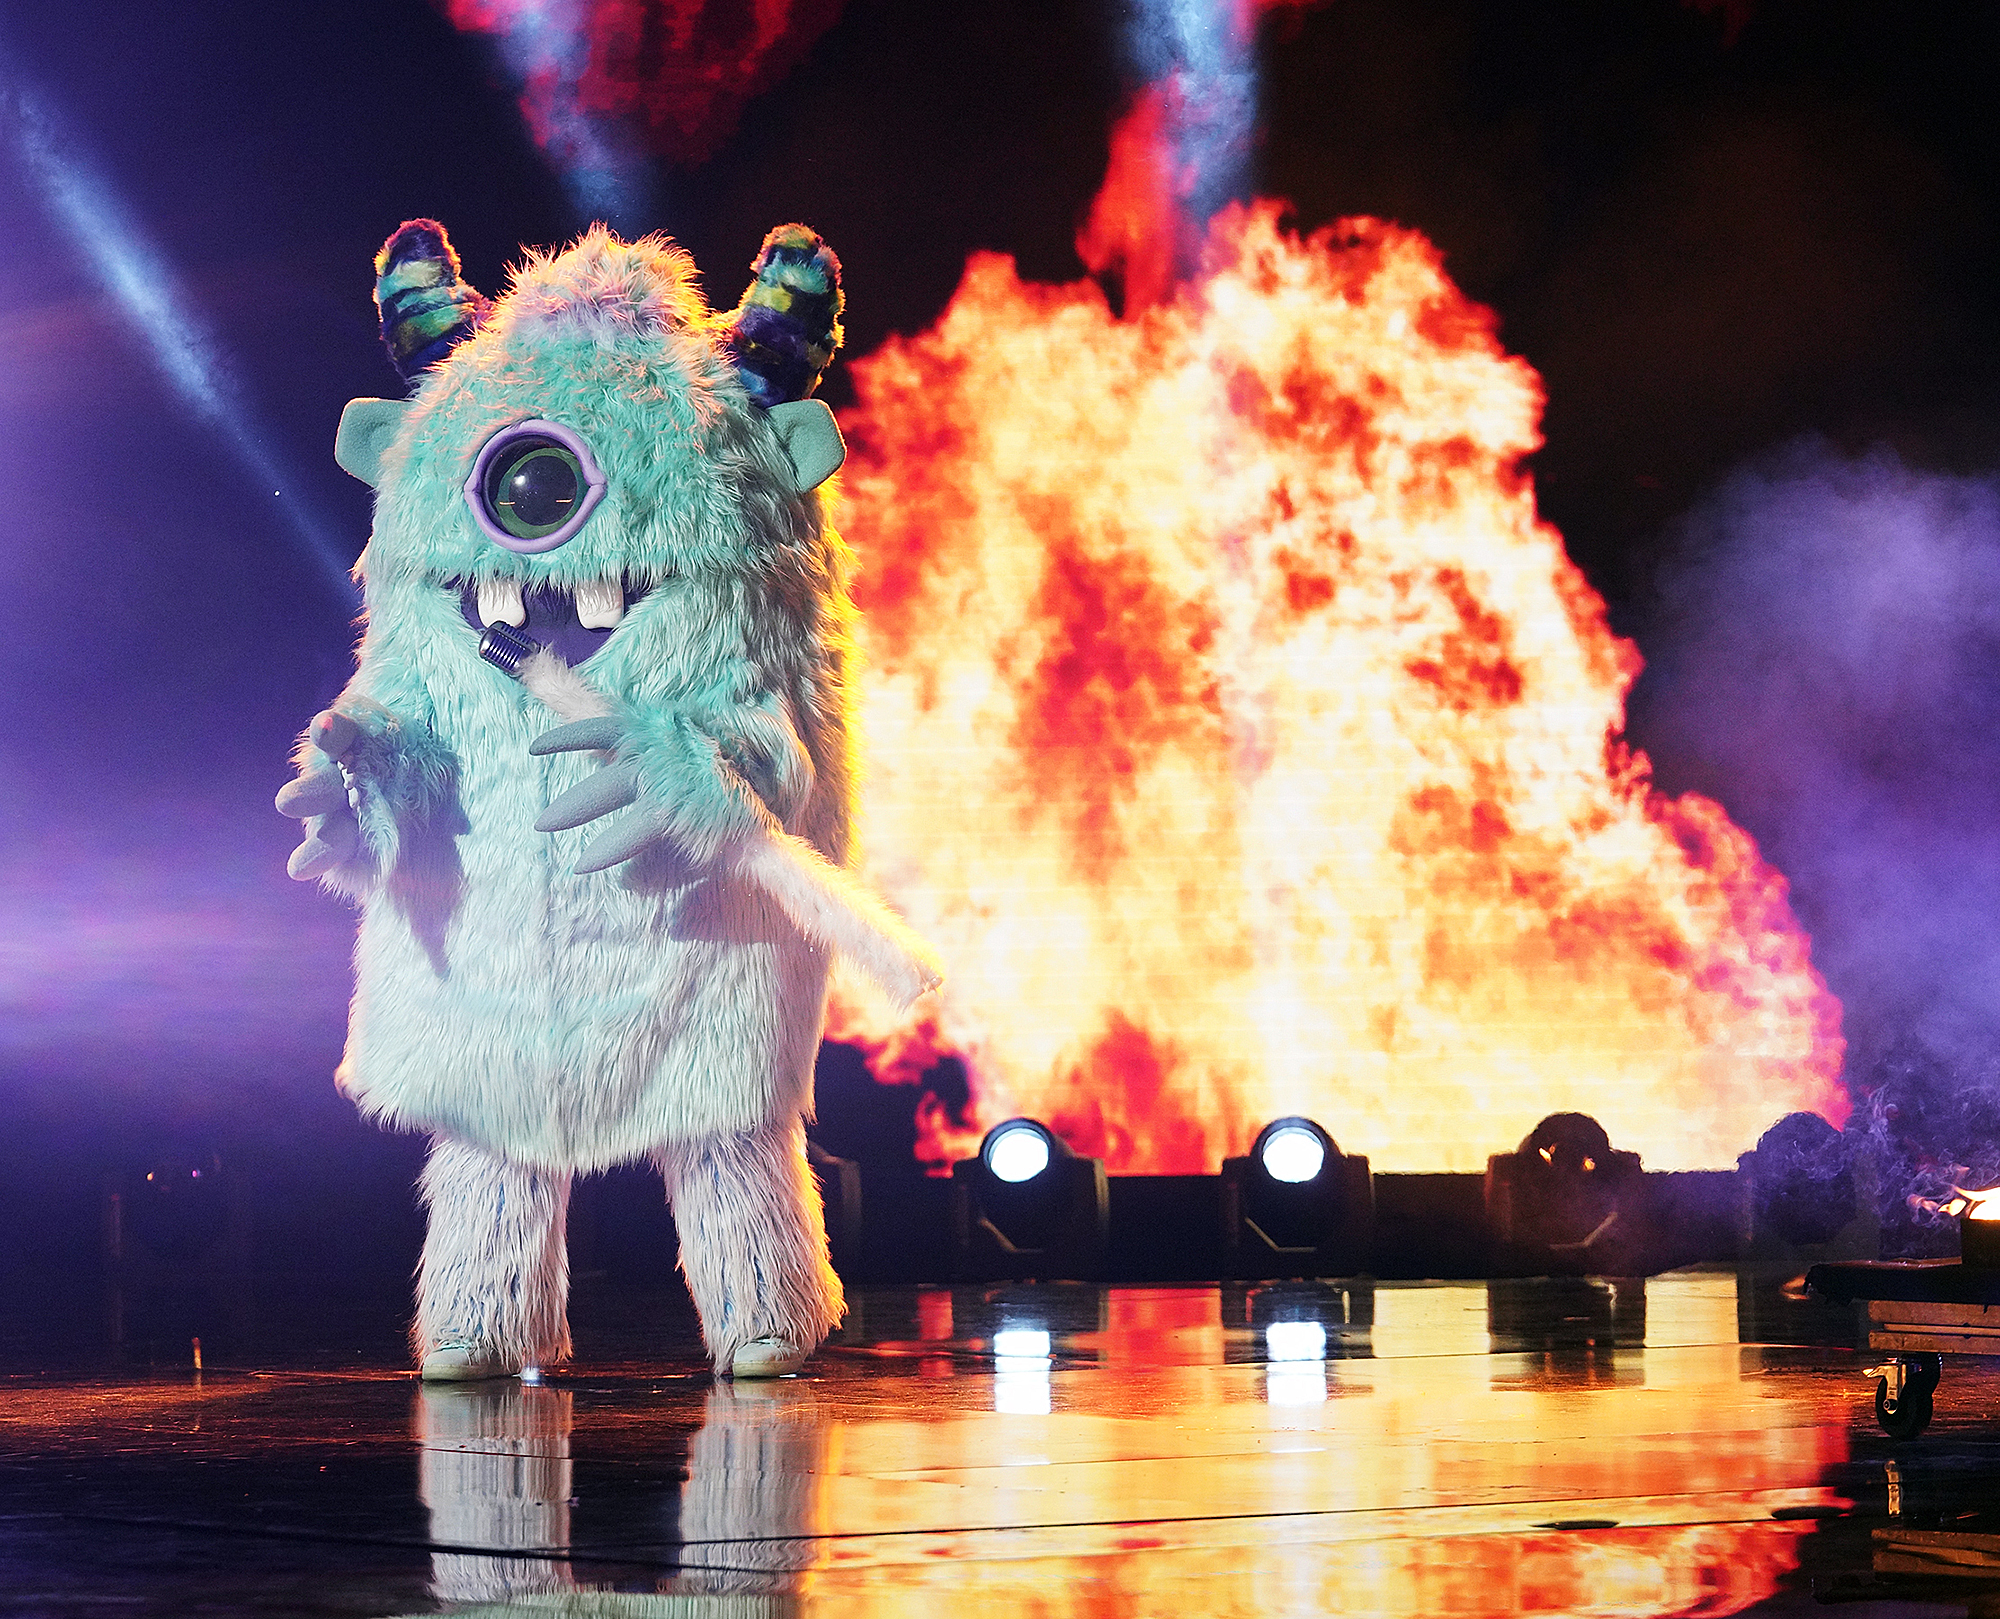 """THE-MASKED-SINGER-Monster - The final performance of the night was the monster, who had said that he was """"labled"""" as a monster and was trying to rewrite his past. Many guessed T-Pain , since he had legal trouble in 2018 and used auto-tune."""